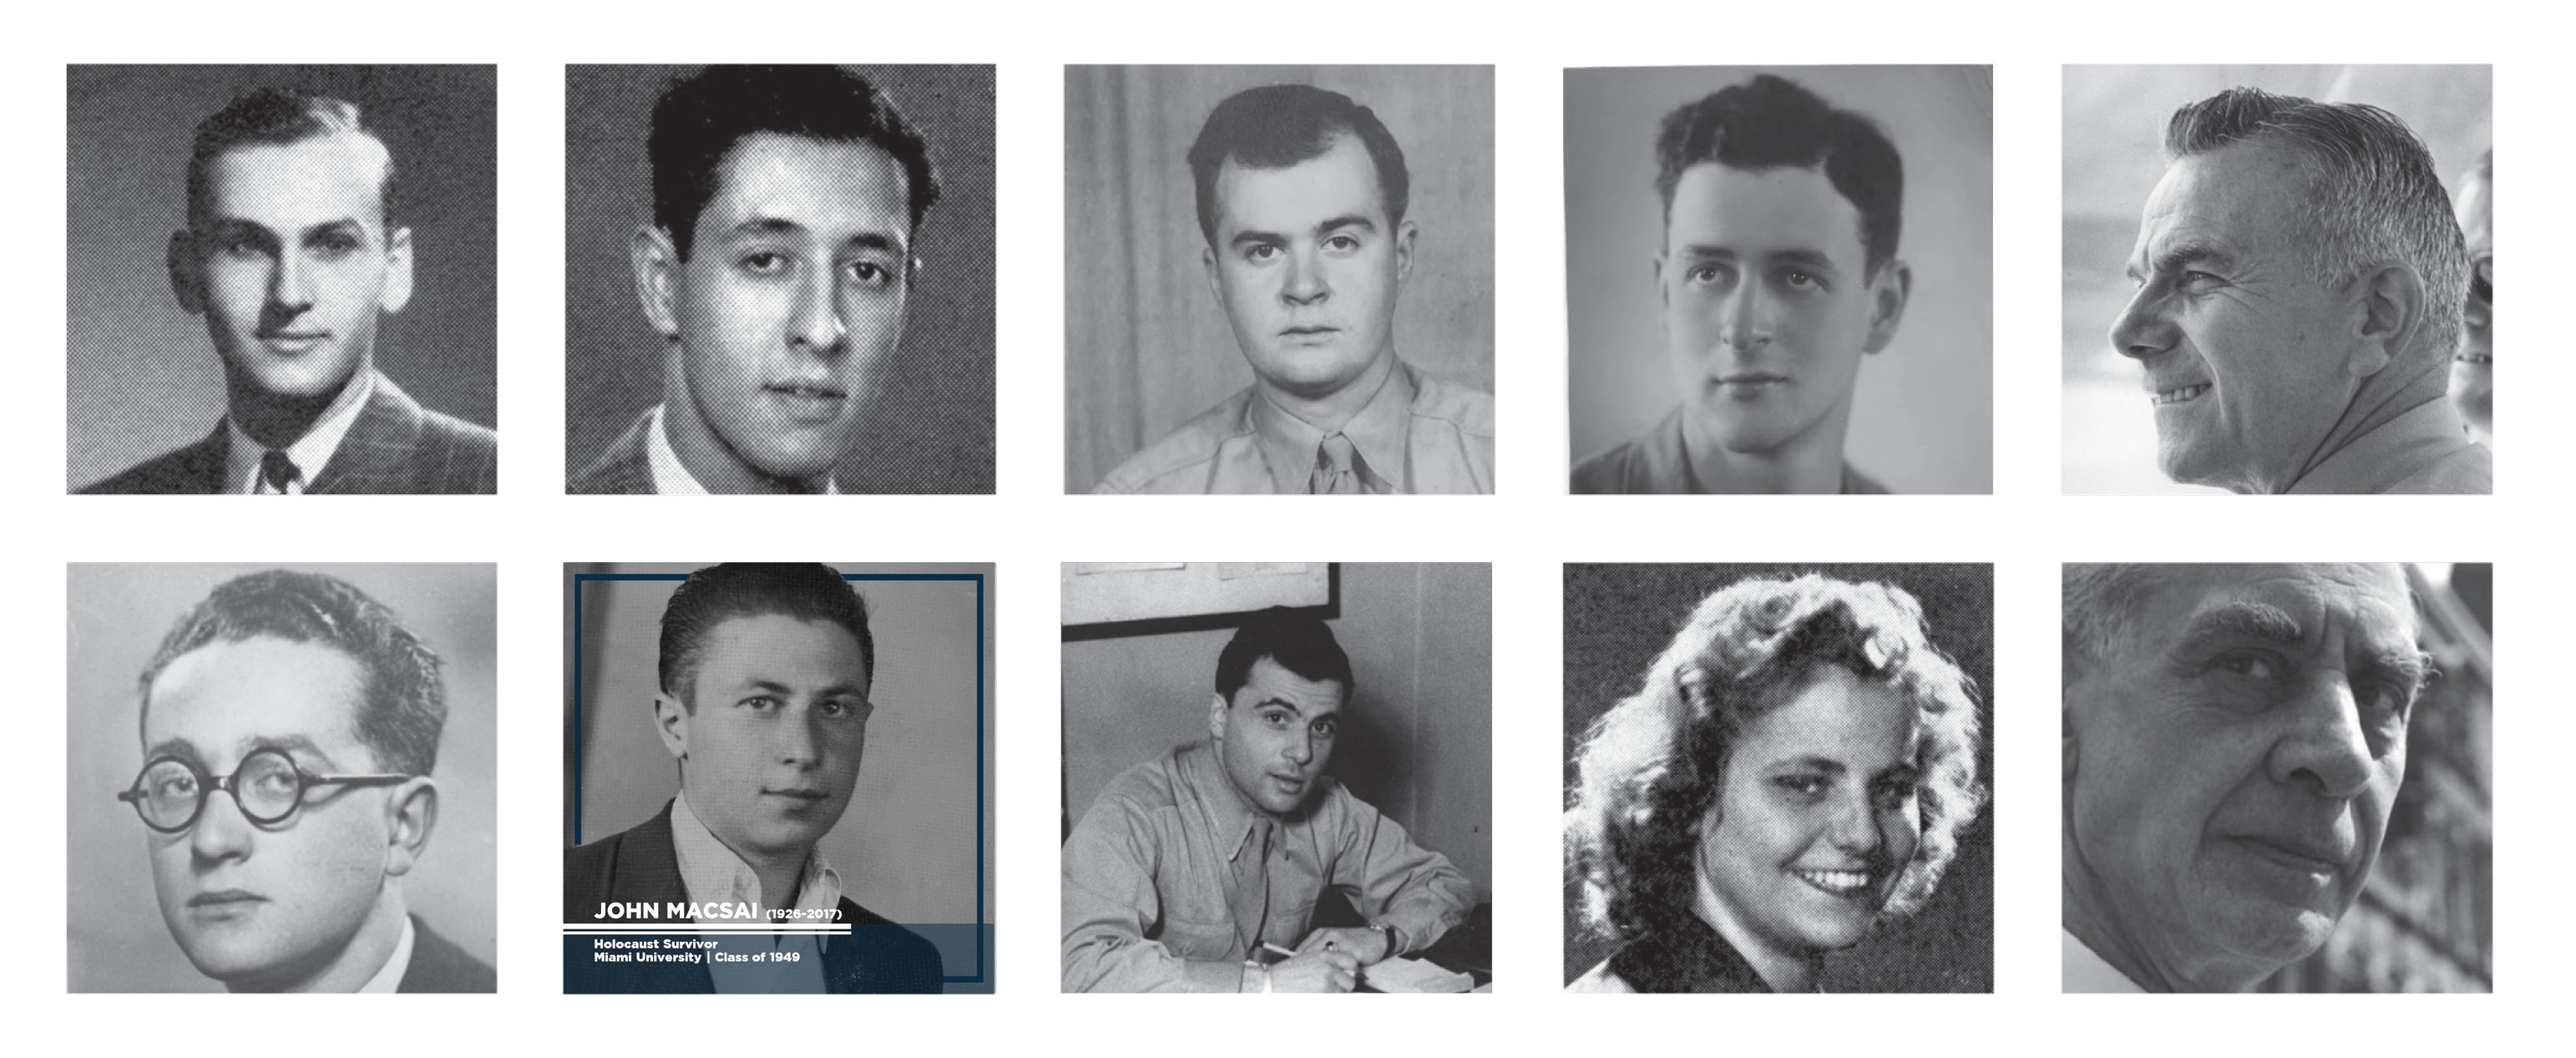 Nine black and white portraits of the alumni and faculty featured in the exhibition Bearing Witness. John Macsai's image is outlined in blue with the text -   John Macsai (1926—2017) Holocaust Survivor Miami University Class of 1949